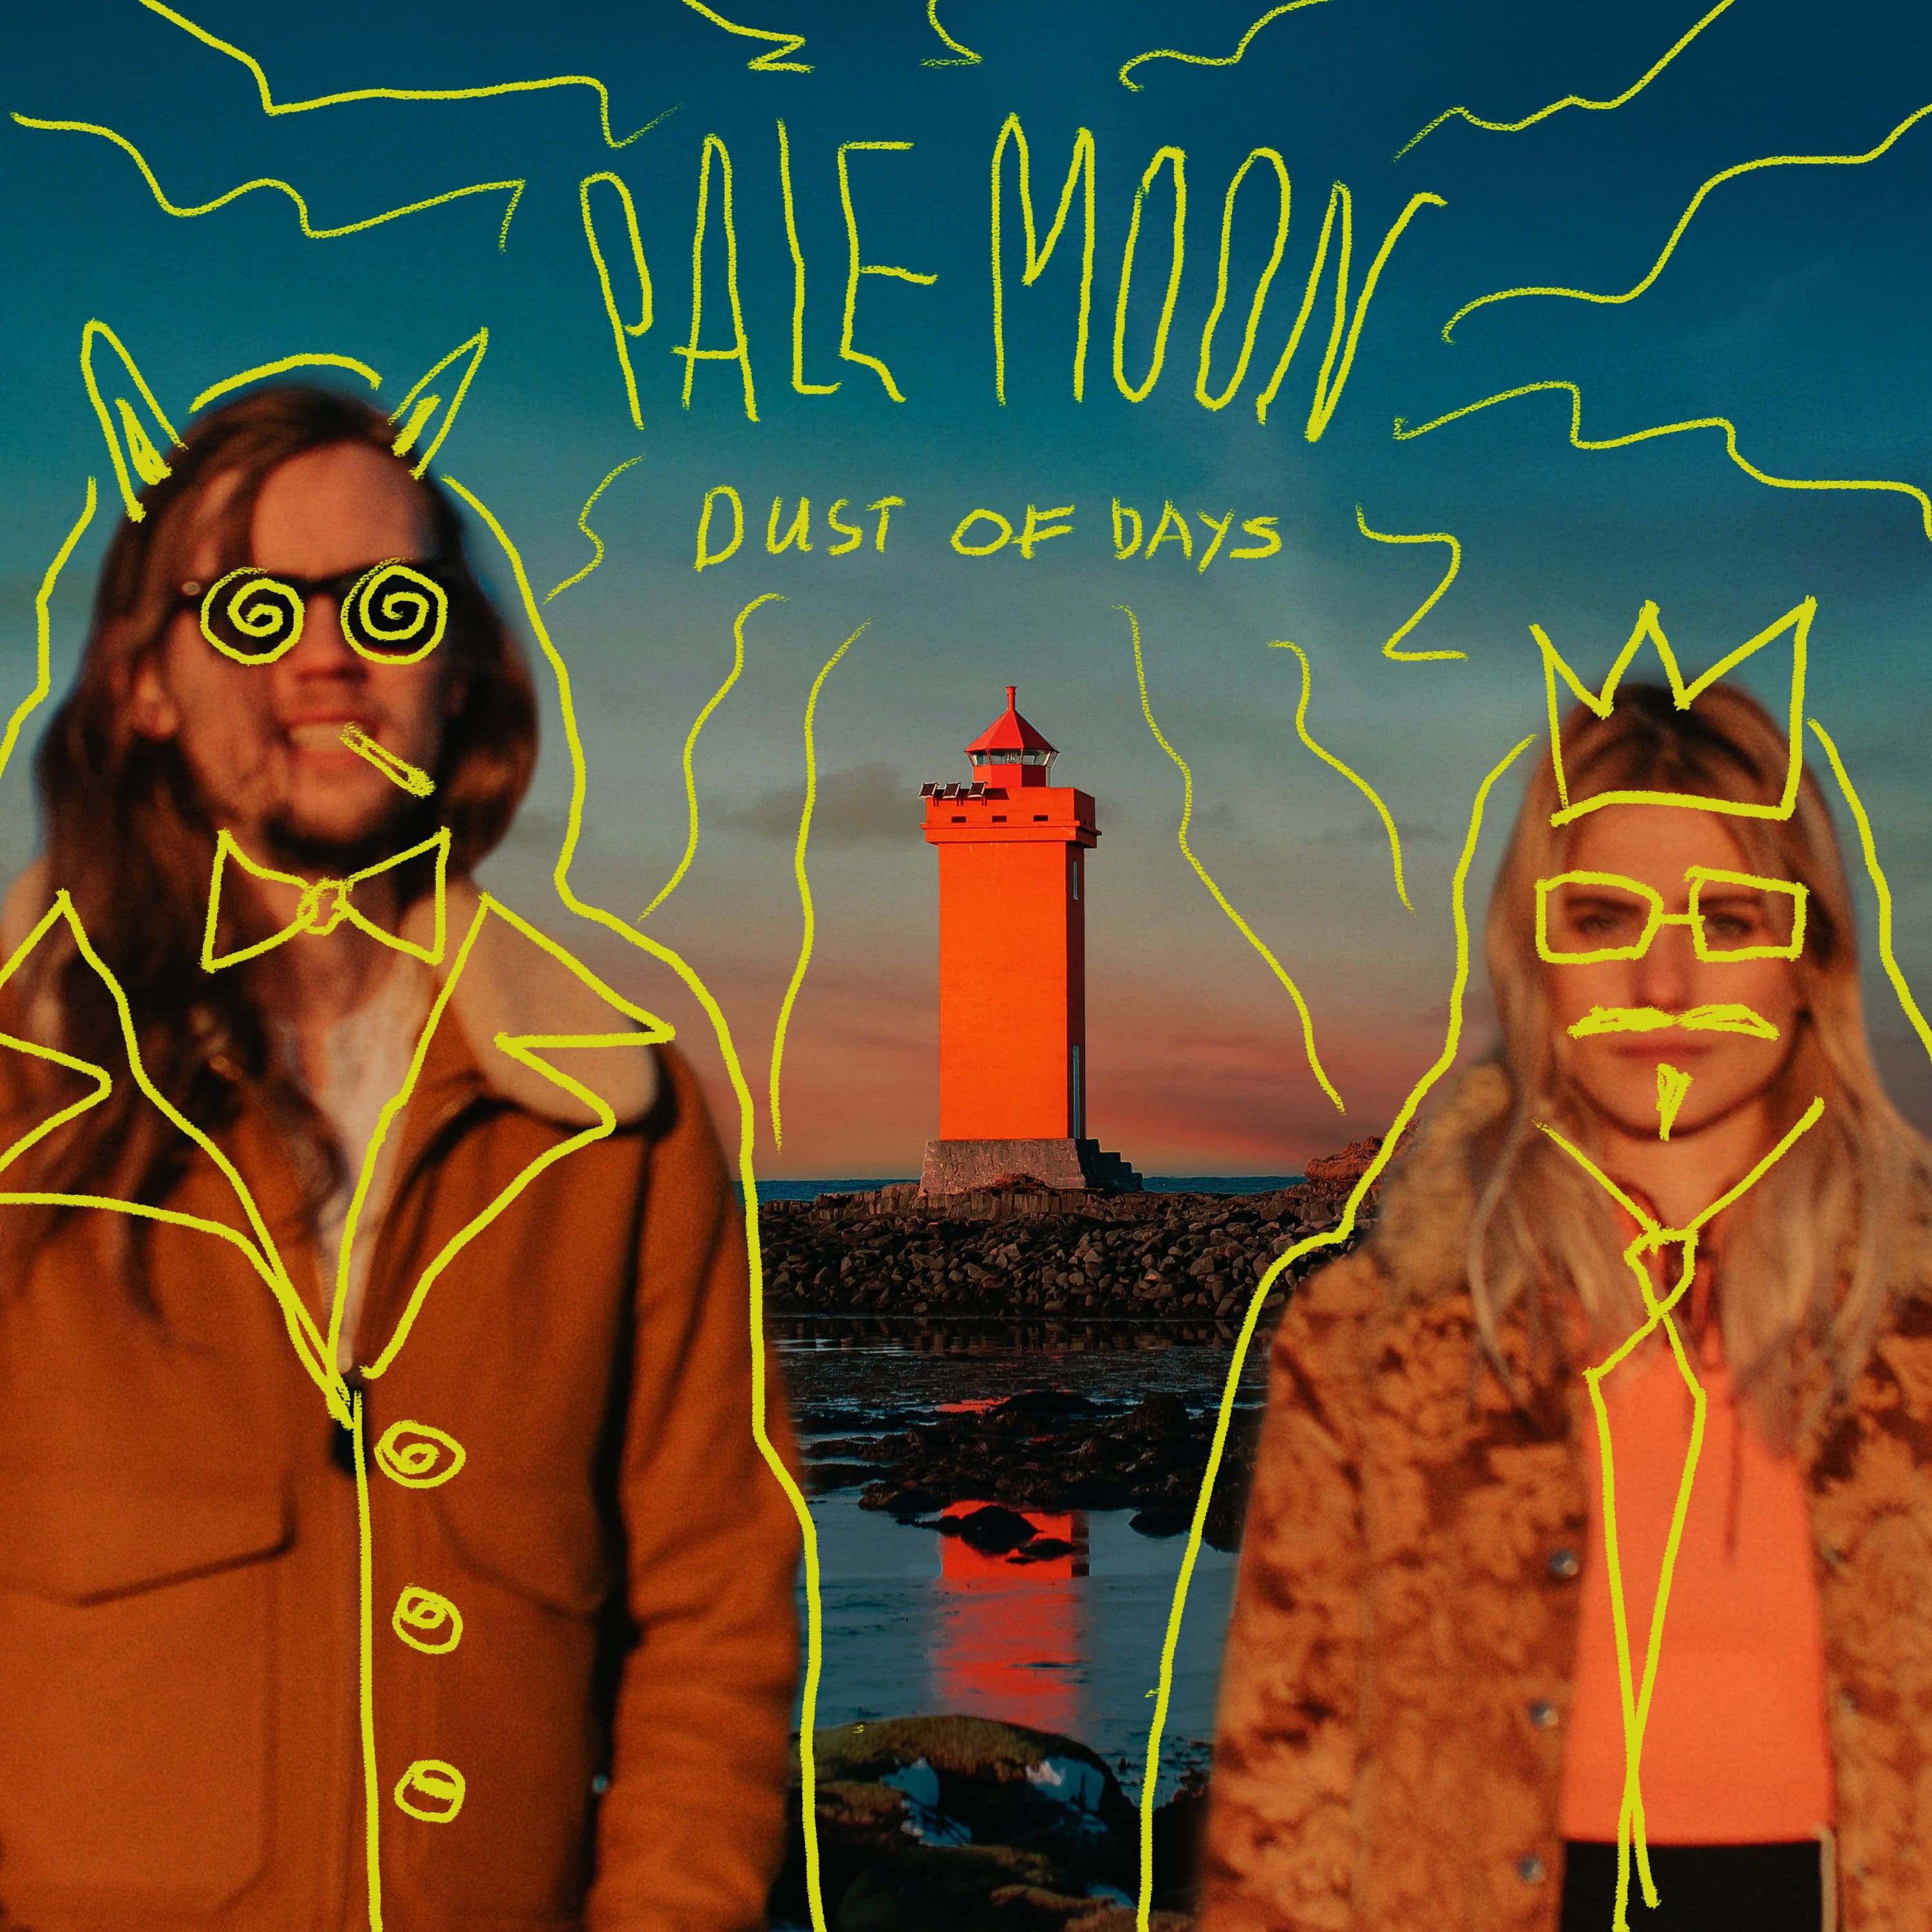 Pale Moon, Exile, Musik, Psychedelic Rock, Indie, Picky, Picky Magazin, Pickymagazine, Online, Blog, Blogger, Single, Review, Russland Island